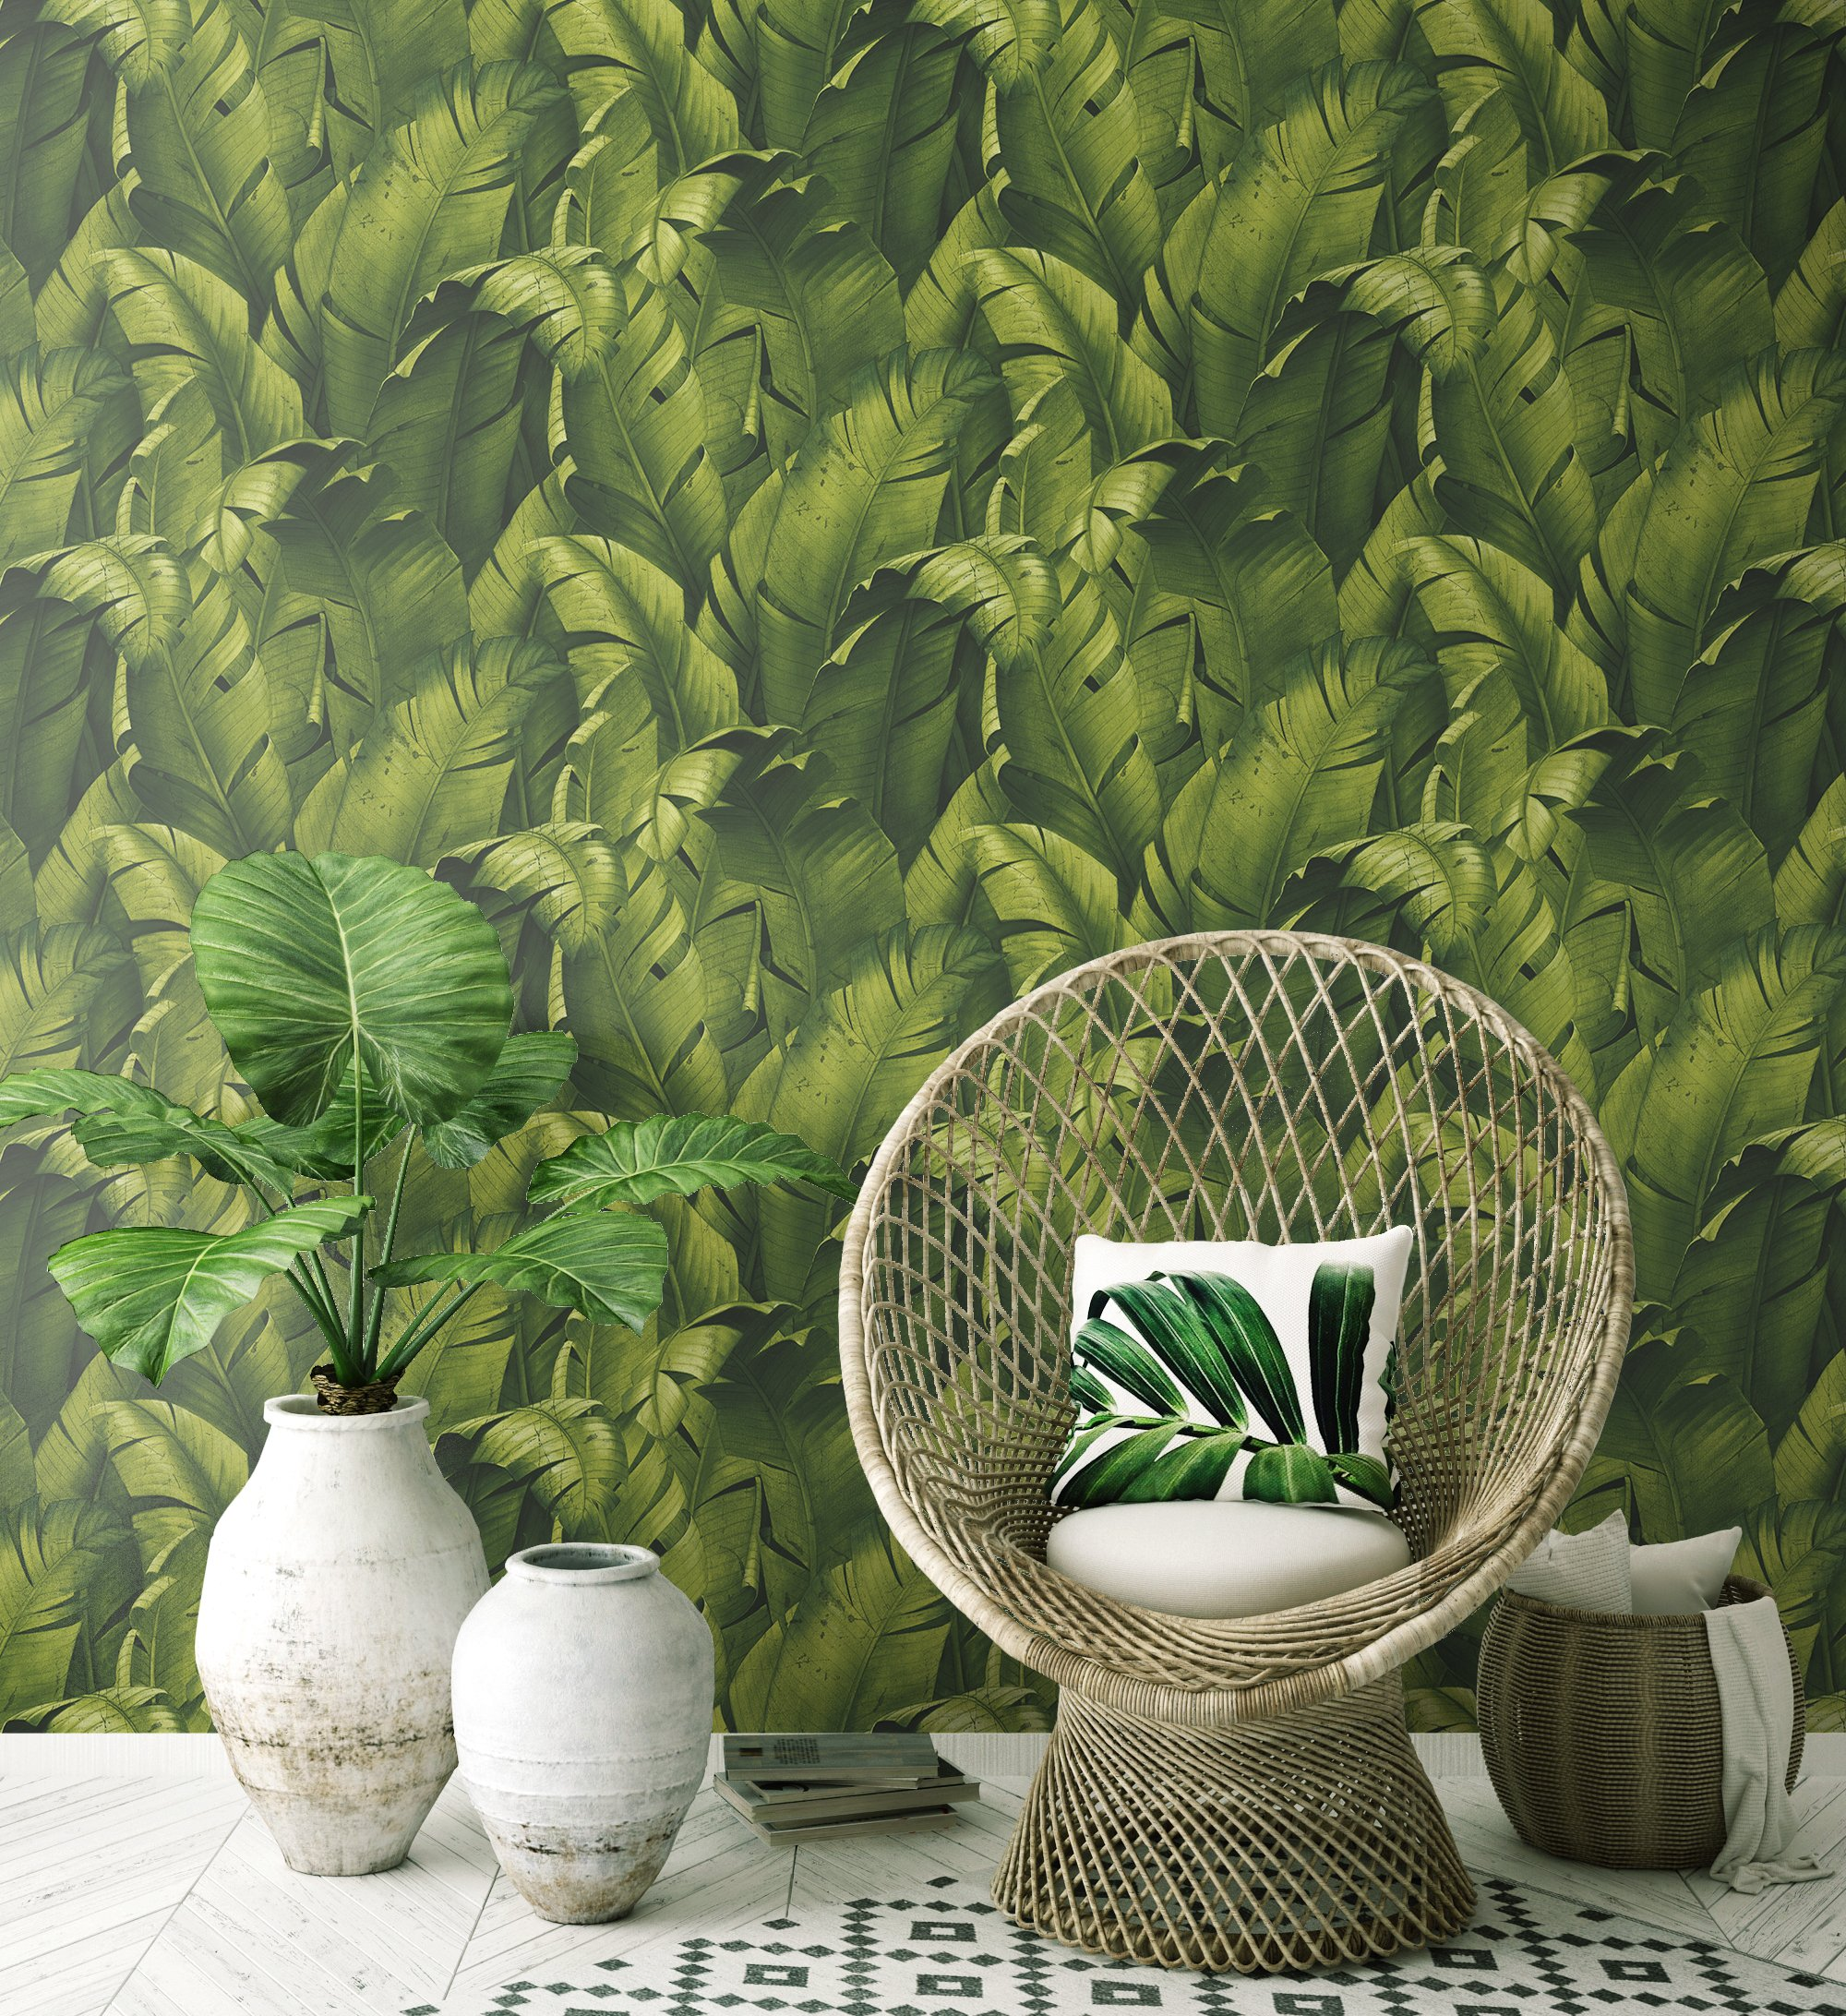 NextWall Tropical Banana Leaves Peel and Stick Wallpaper. (Green) by NextWall